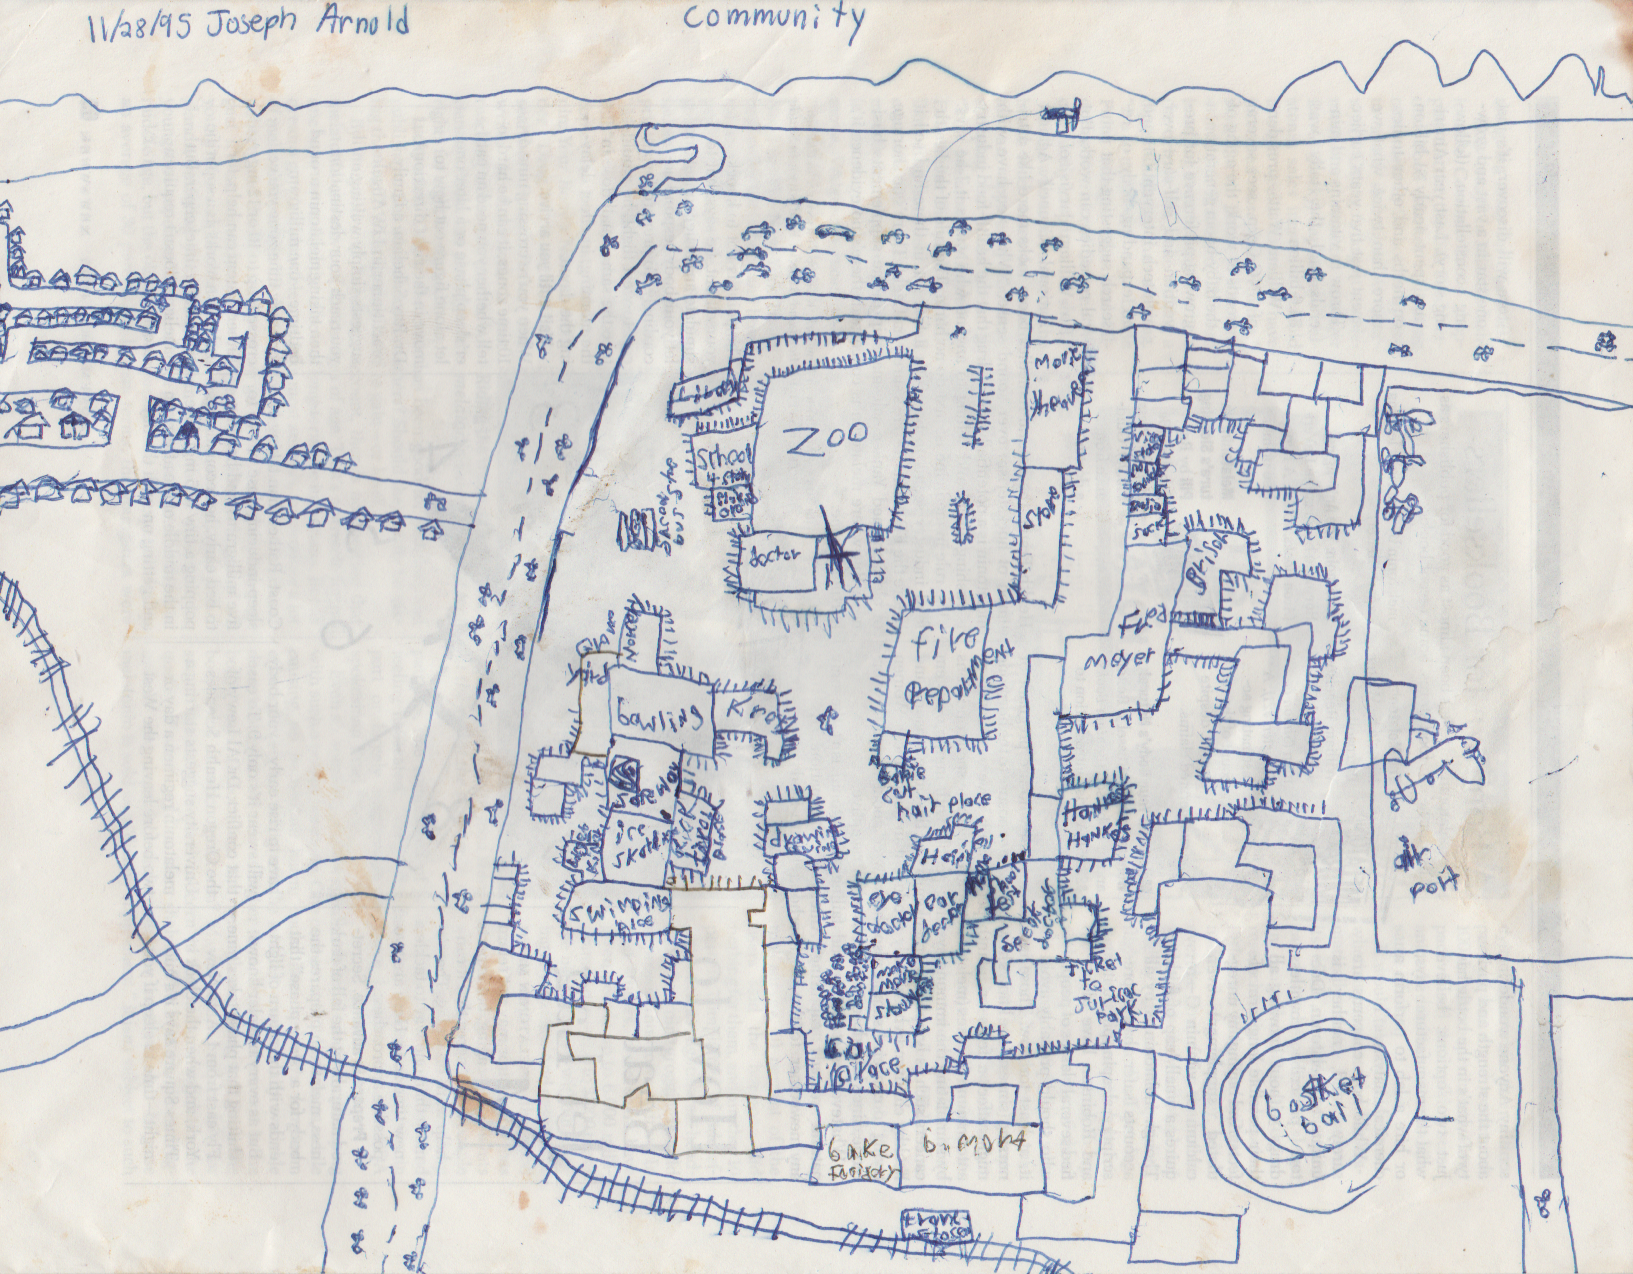 1995-11-28 - Tuesday - SIM City Drawing, by 8 yr old Joey Arnold-1.png